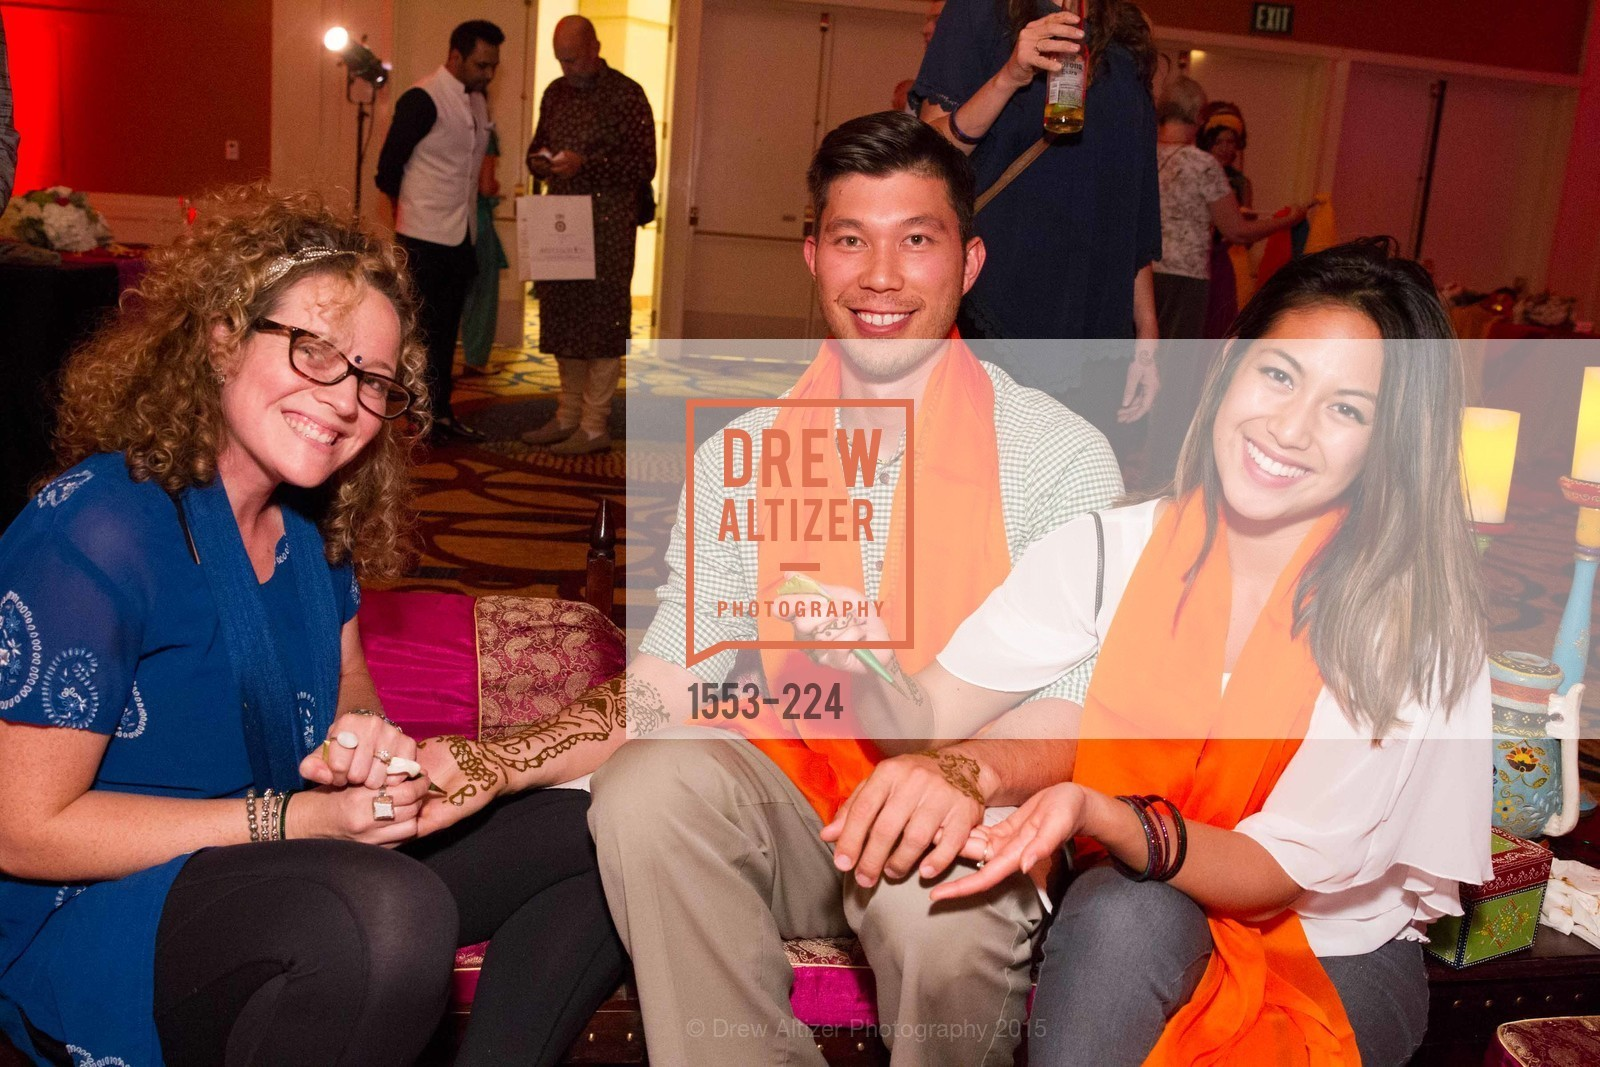 Extras, Life Chiropractic College West Presents The Wave, August 8th, 2015, Photo,Drew Altizer, Drew Altizer Photography, full-service event agency, private events, San Francisco photographer, photographer California